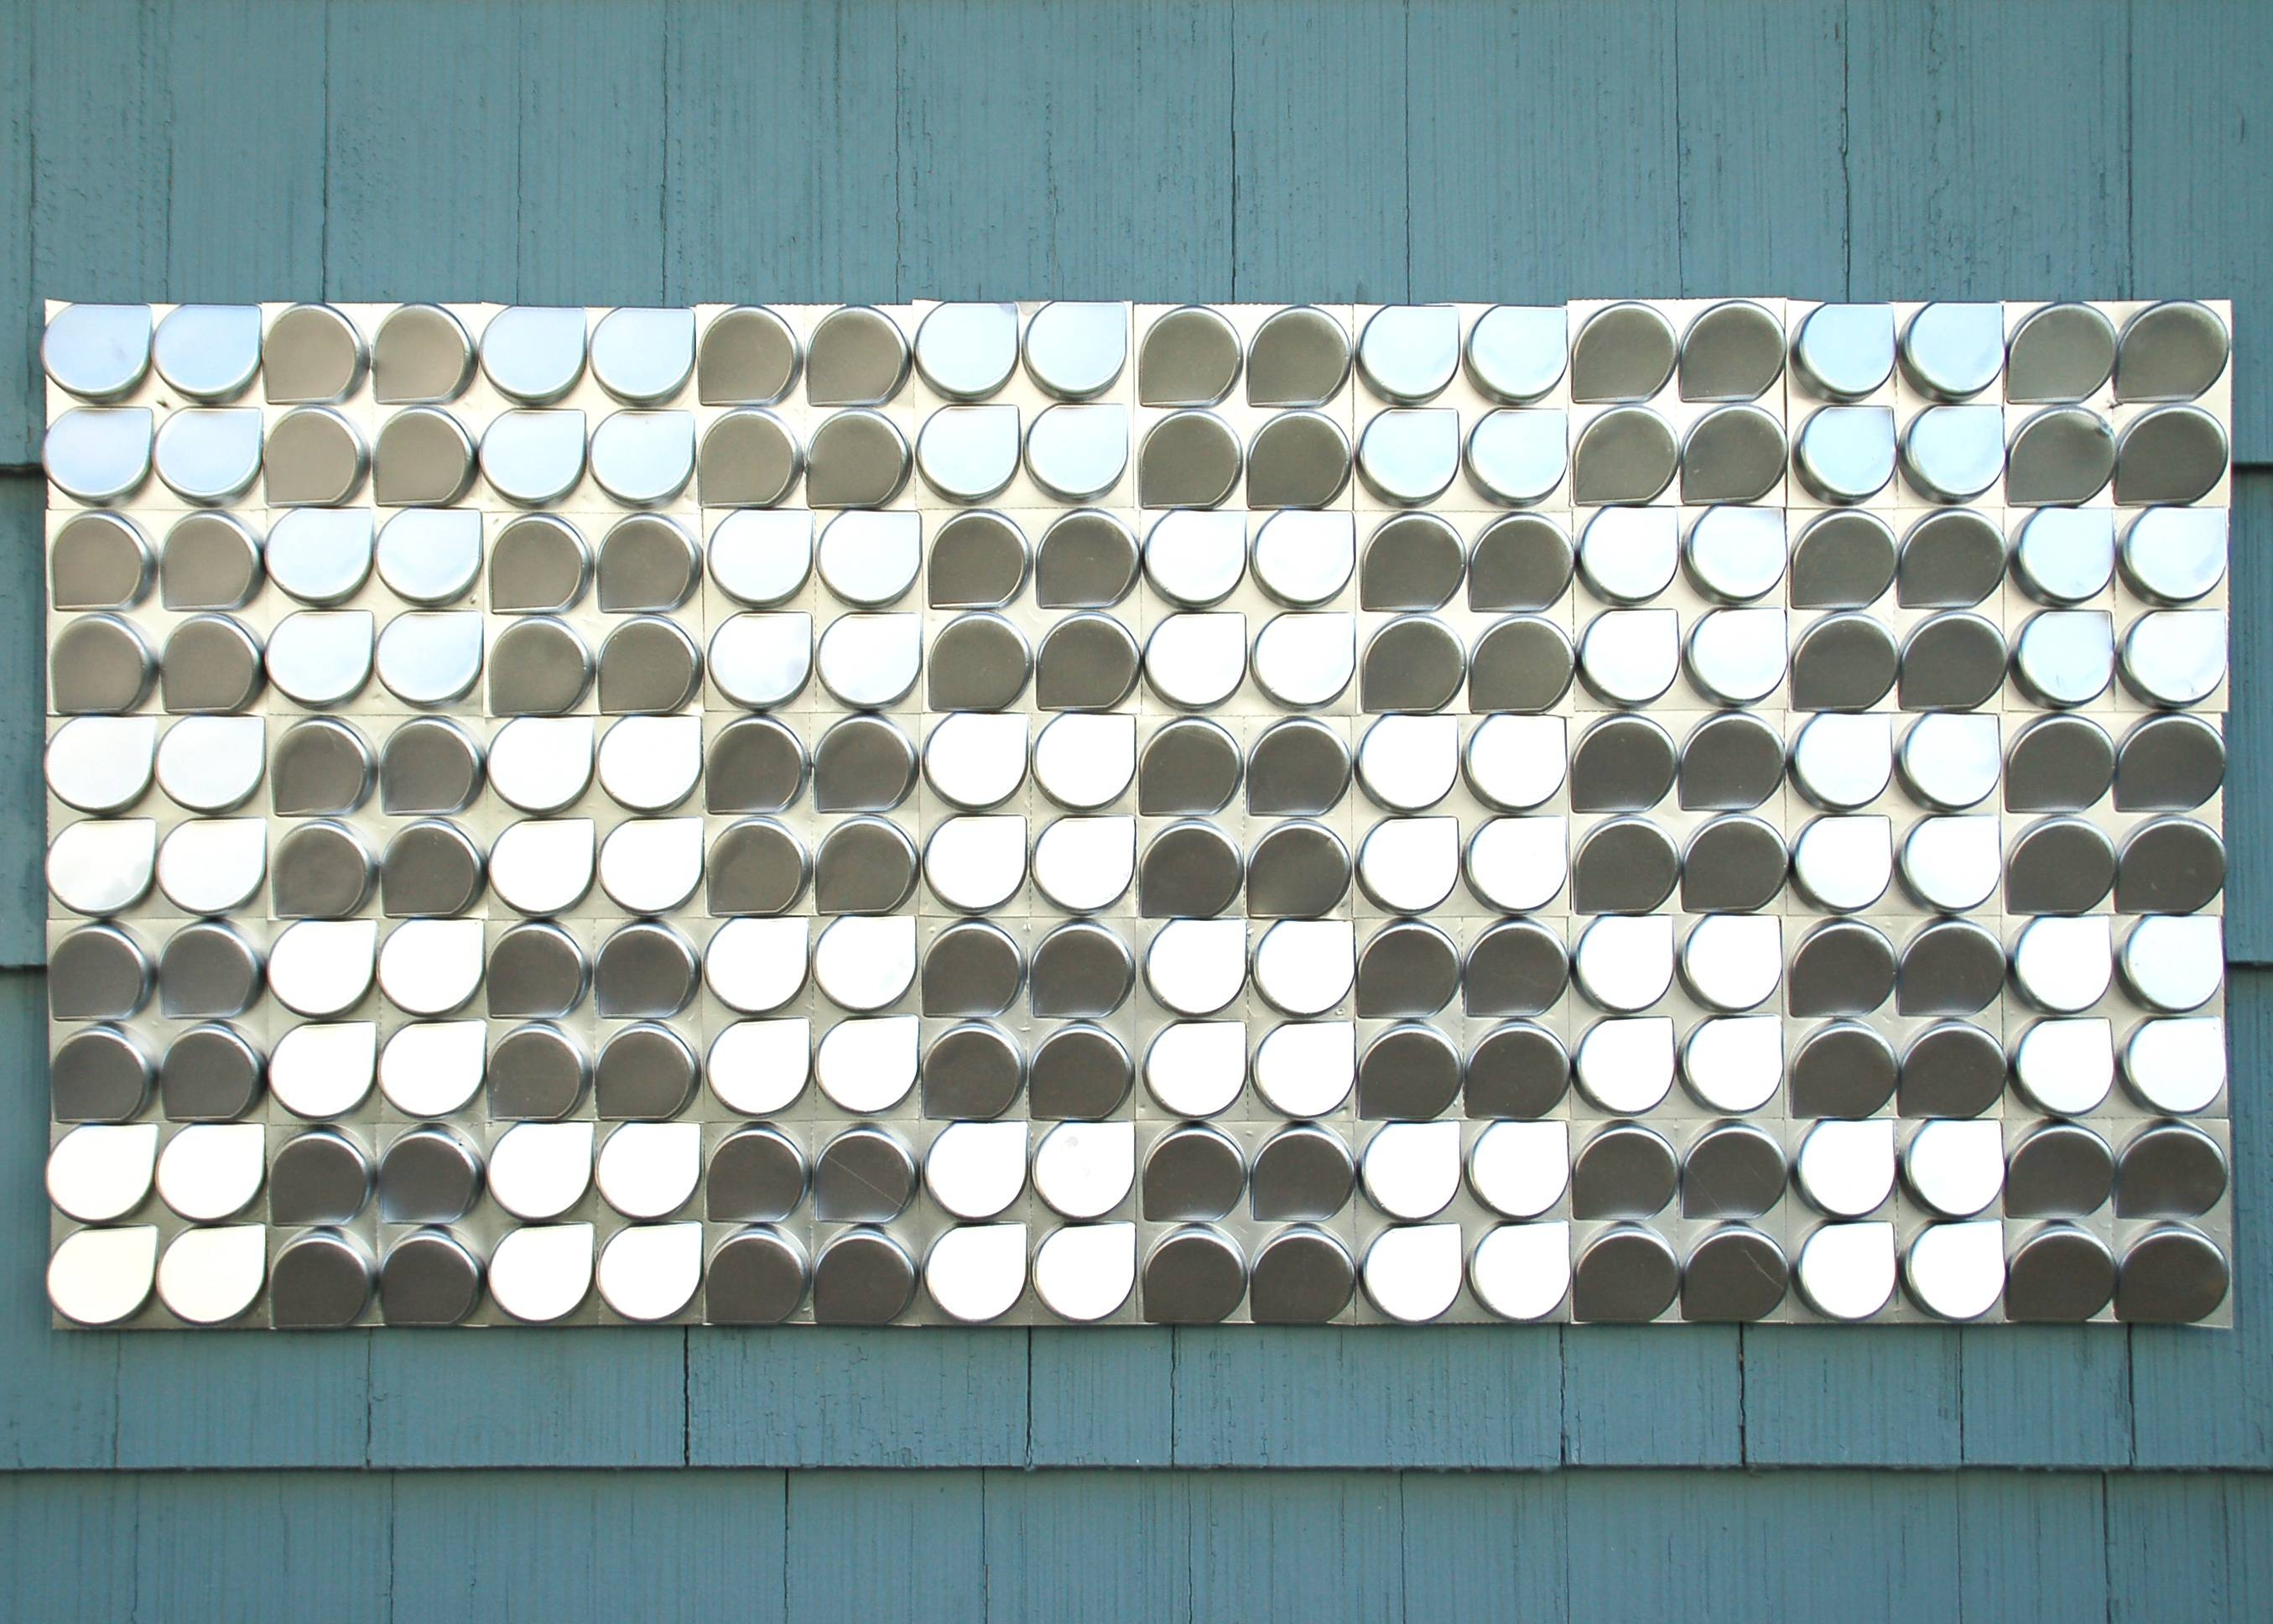 Freecycled Outdoor Wall Art | Ideas Realized Inside Current Recycled Wall Art (View 7 of 30)